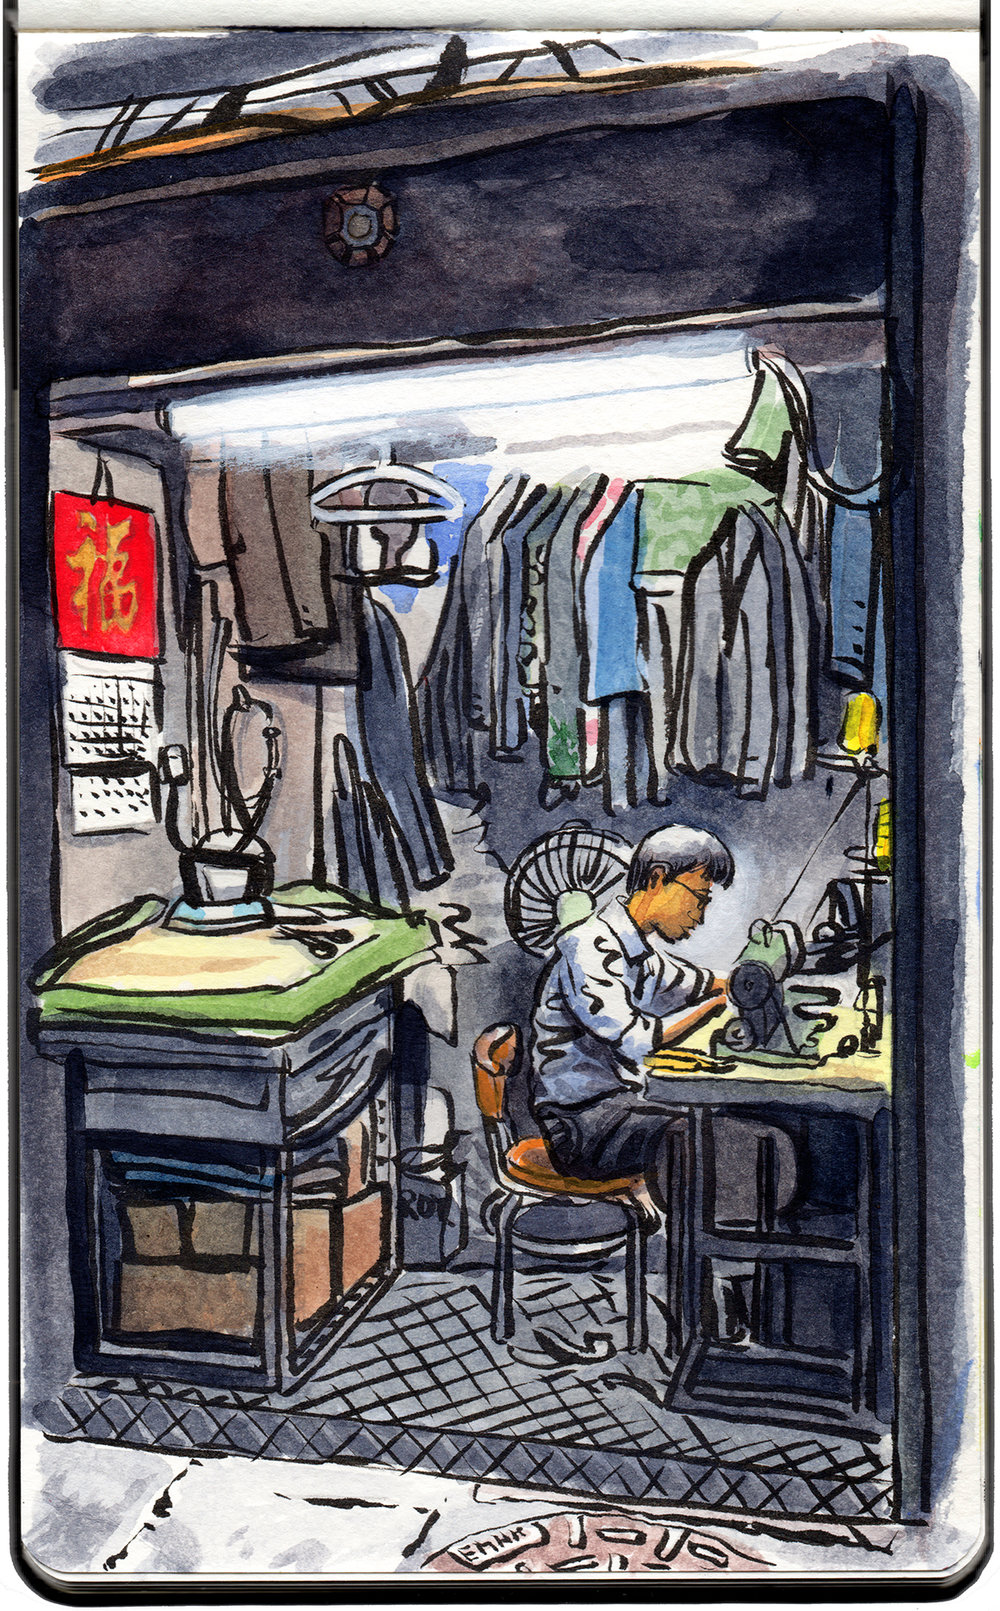 Tailor, East TST.